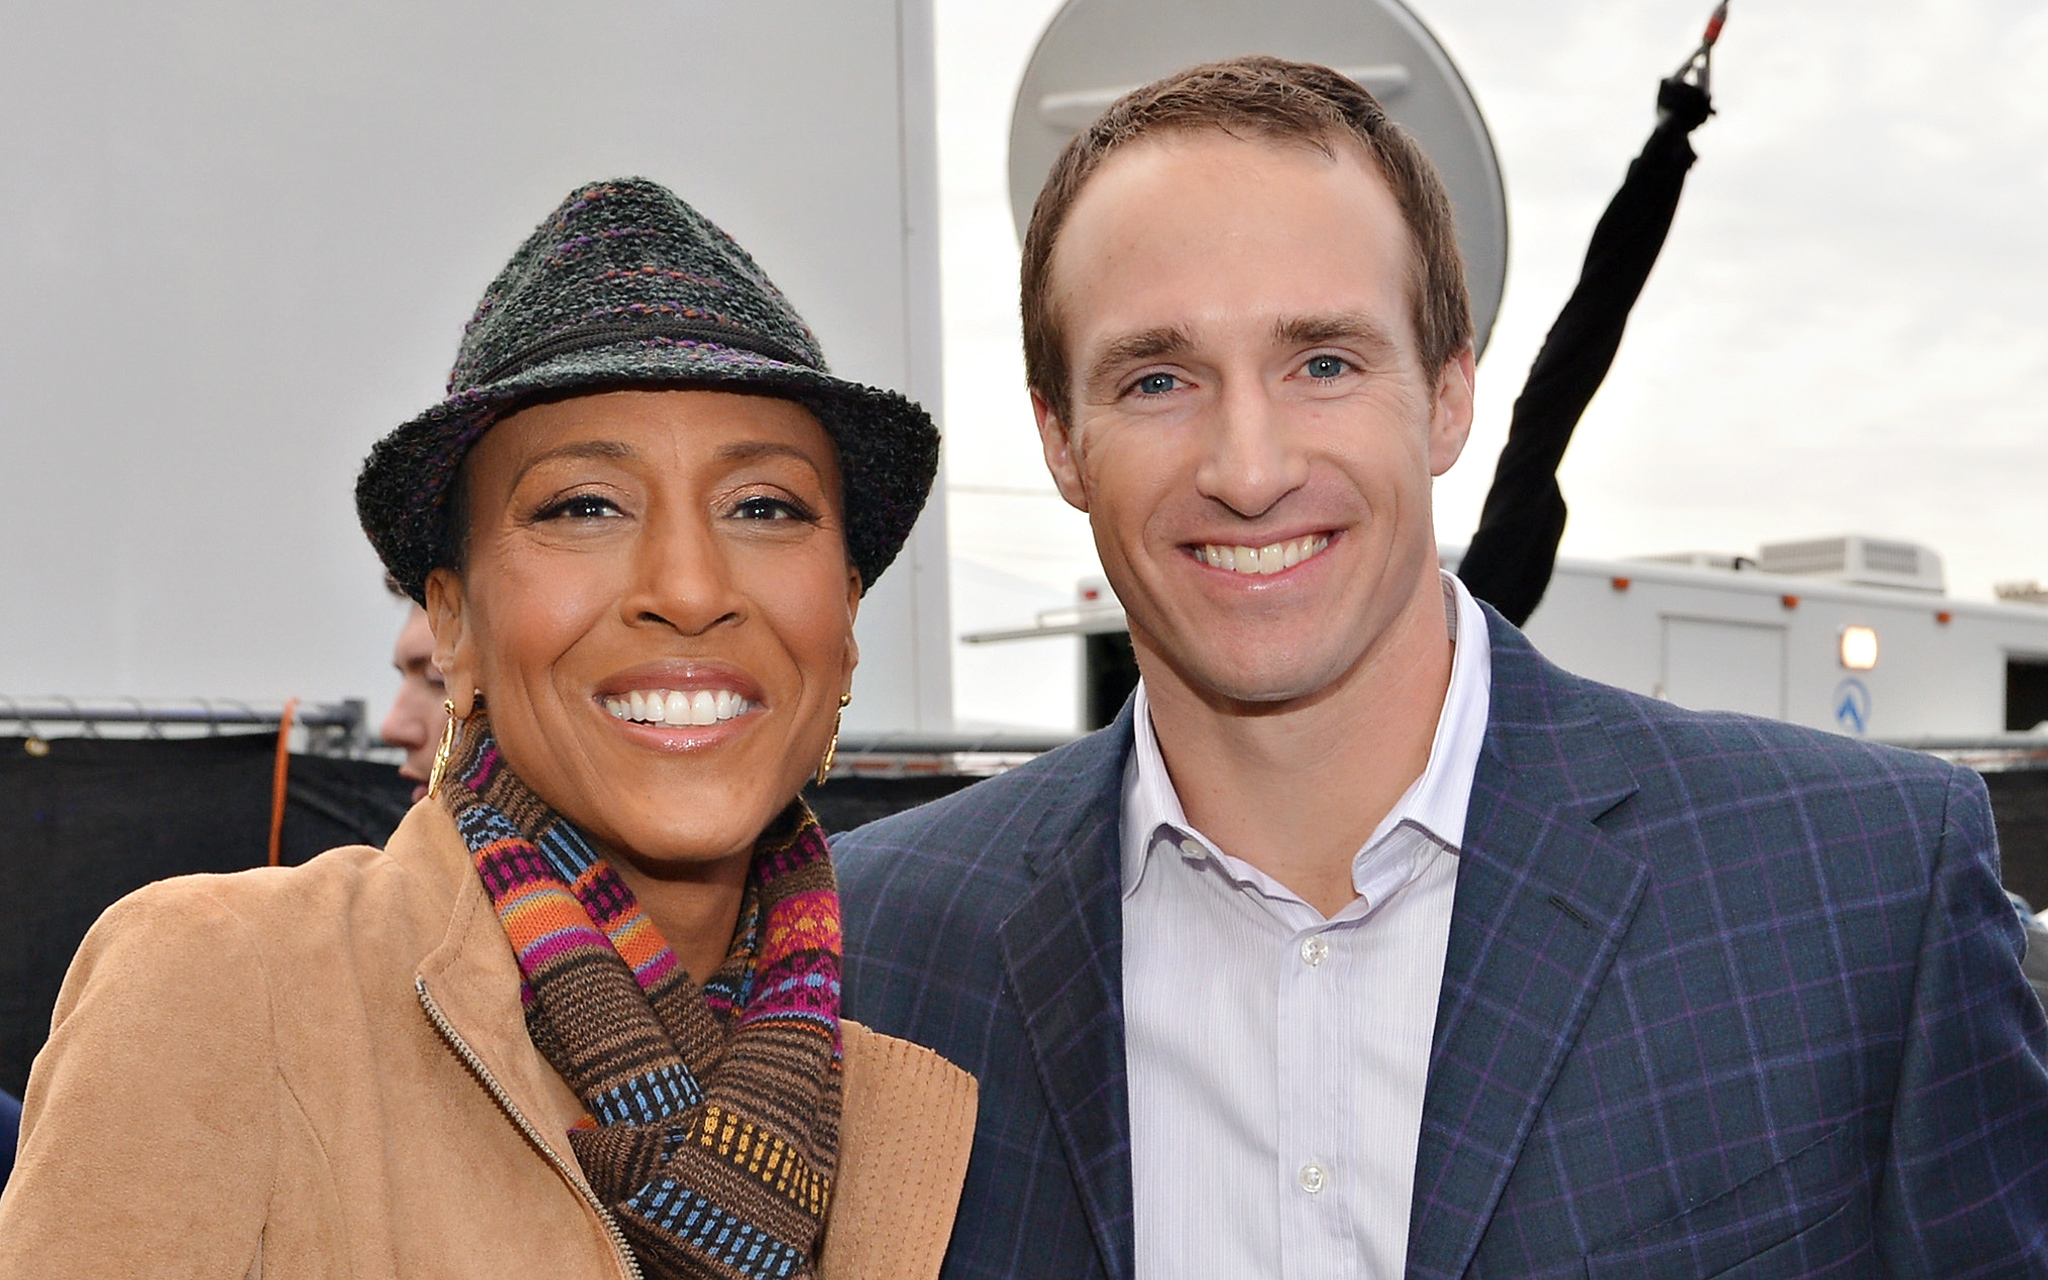 Robin Roberts and Drew Brees